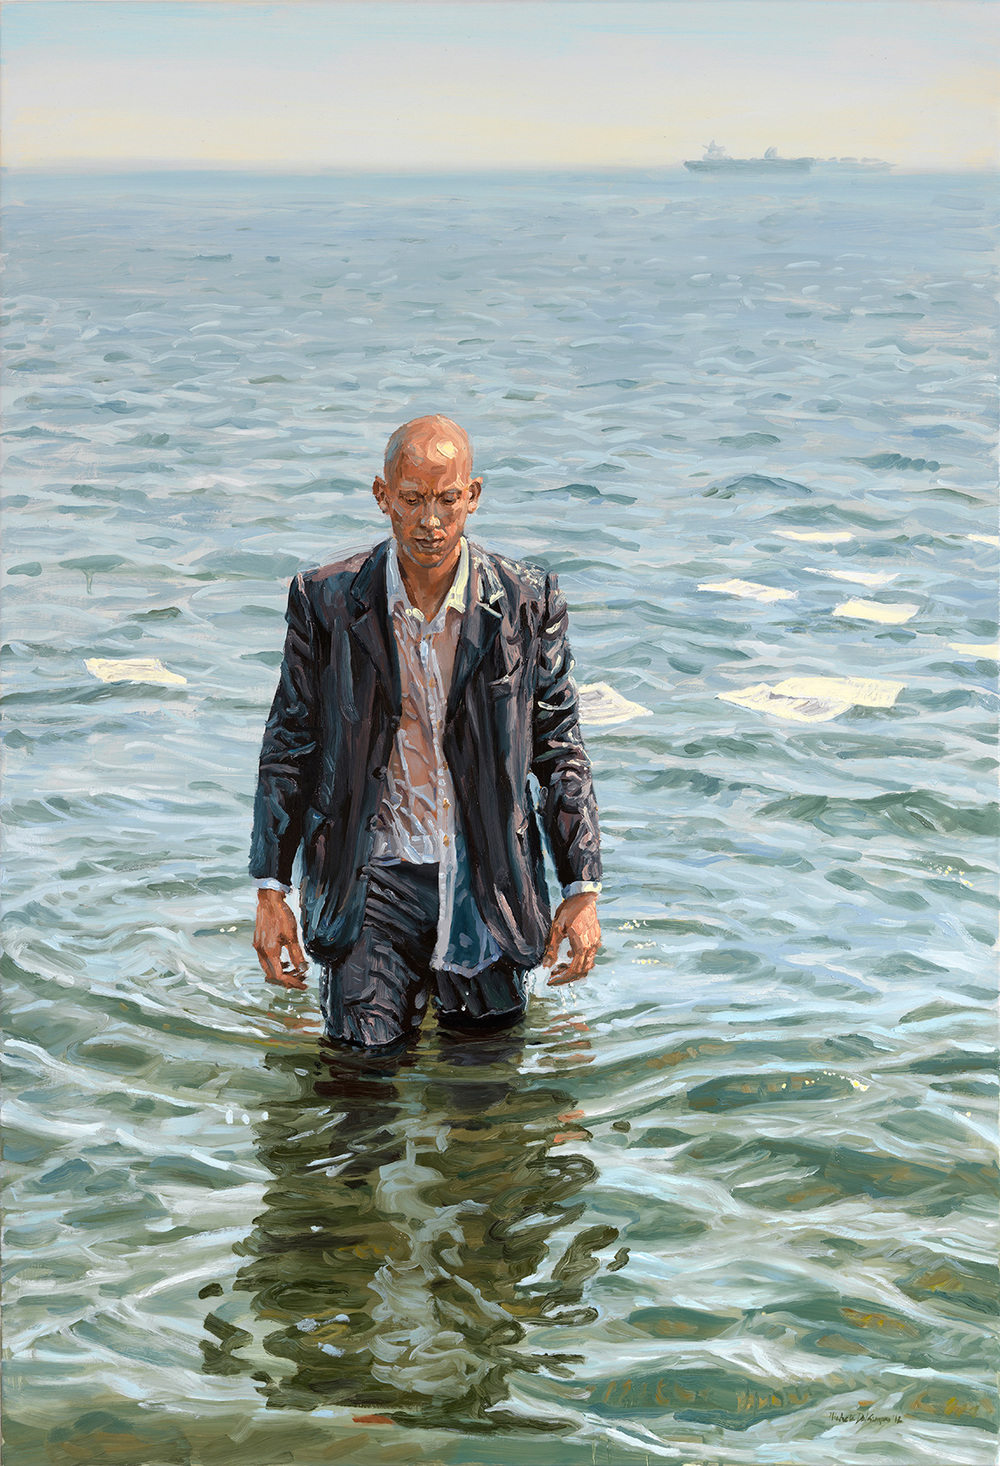 The Abandonment, 2012, oil on linen, 130x89cm